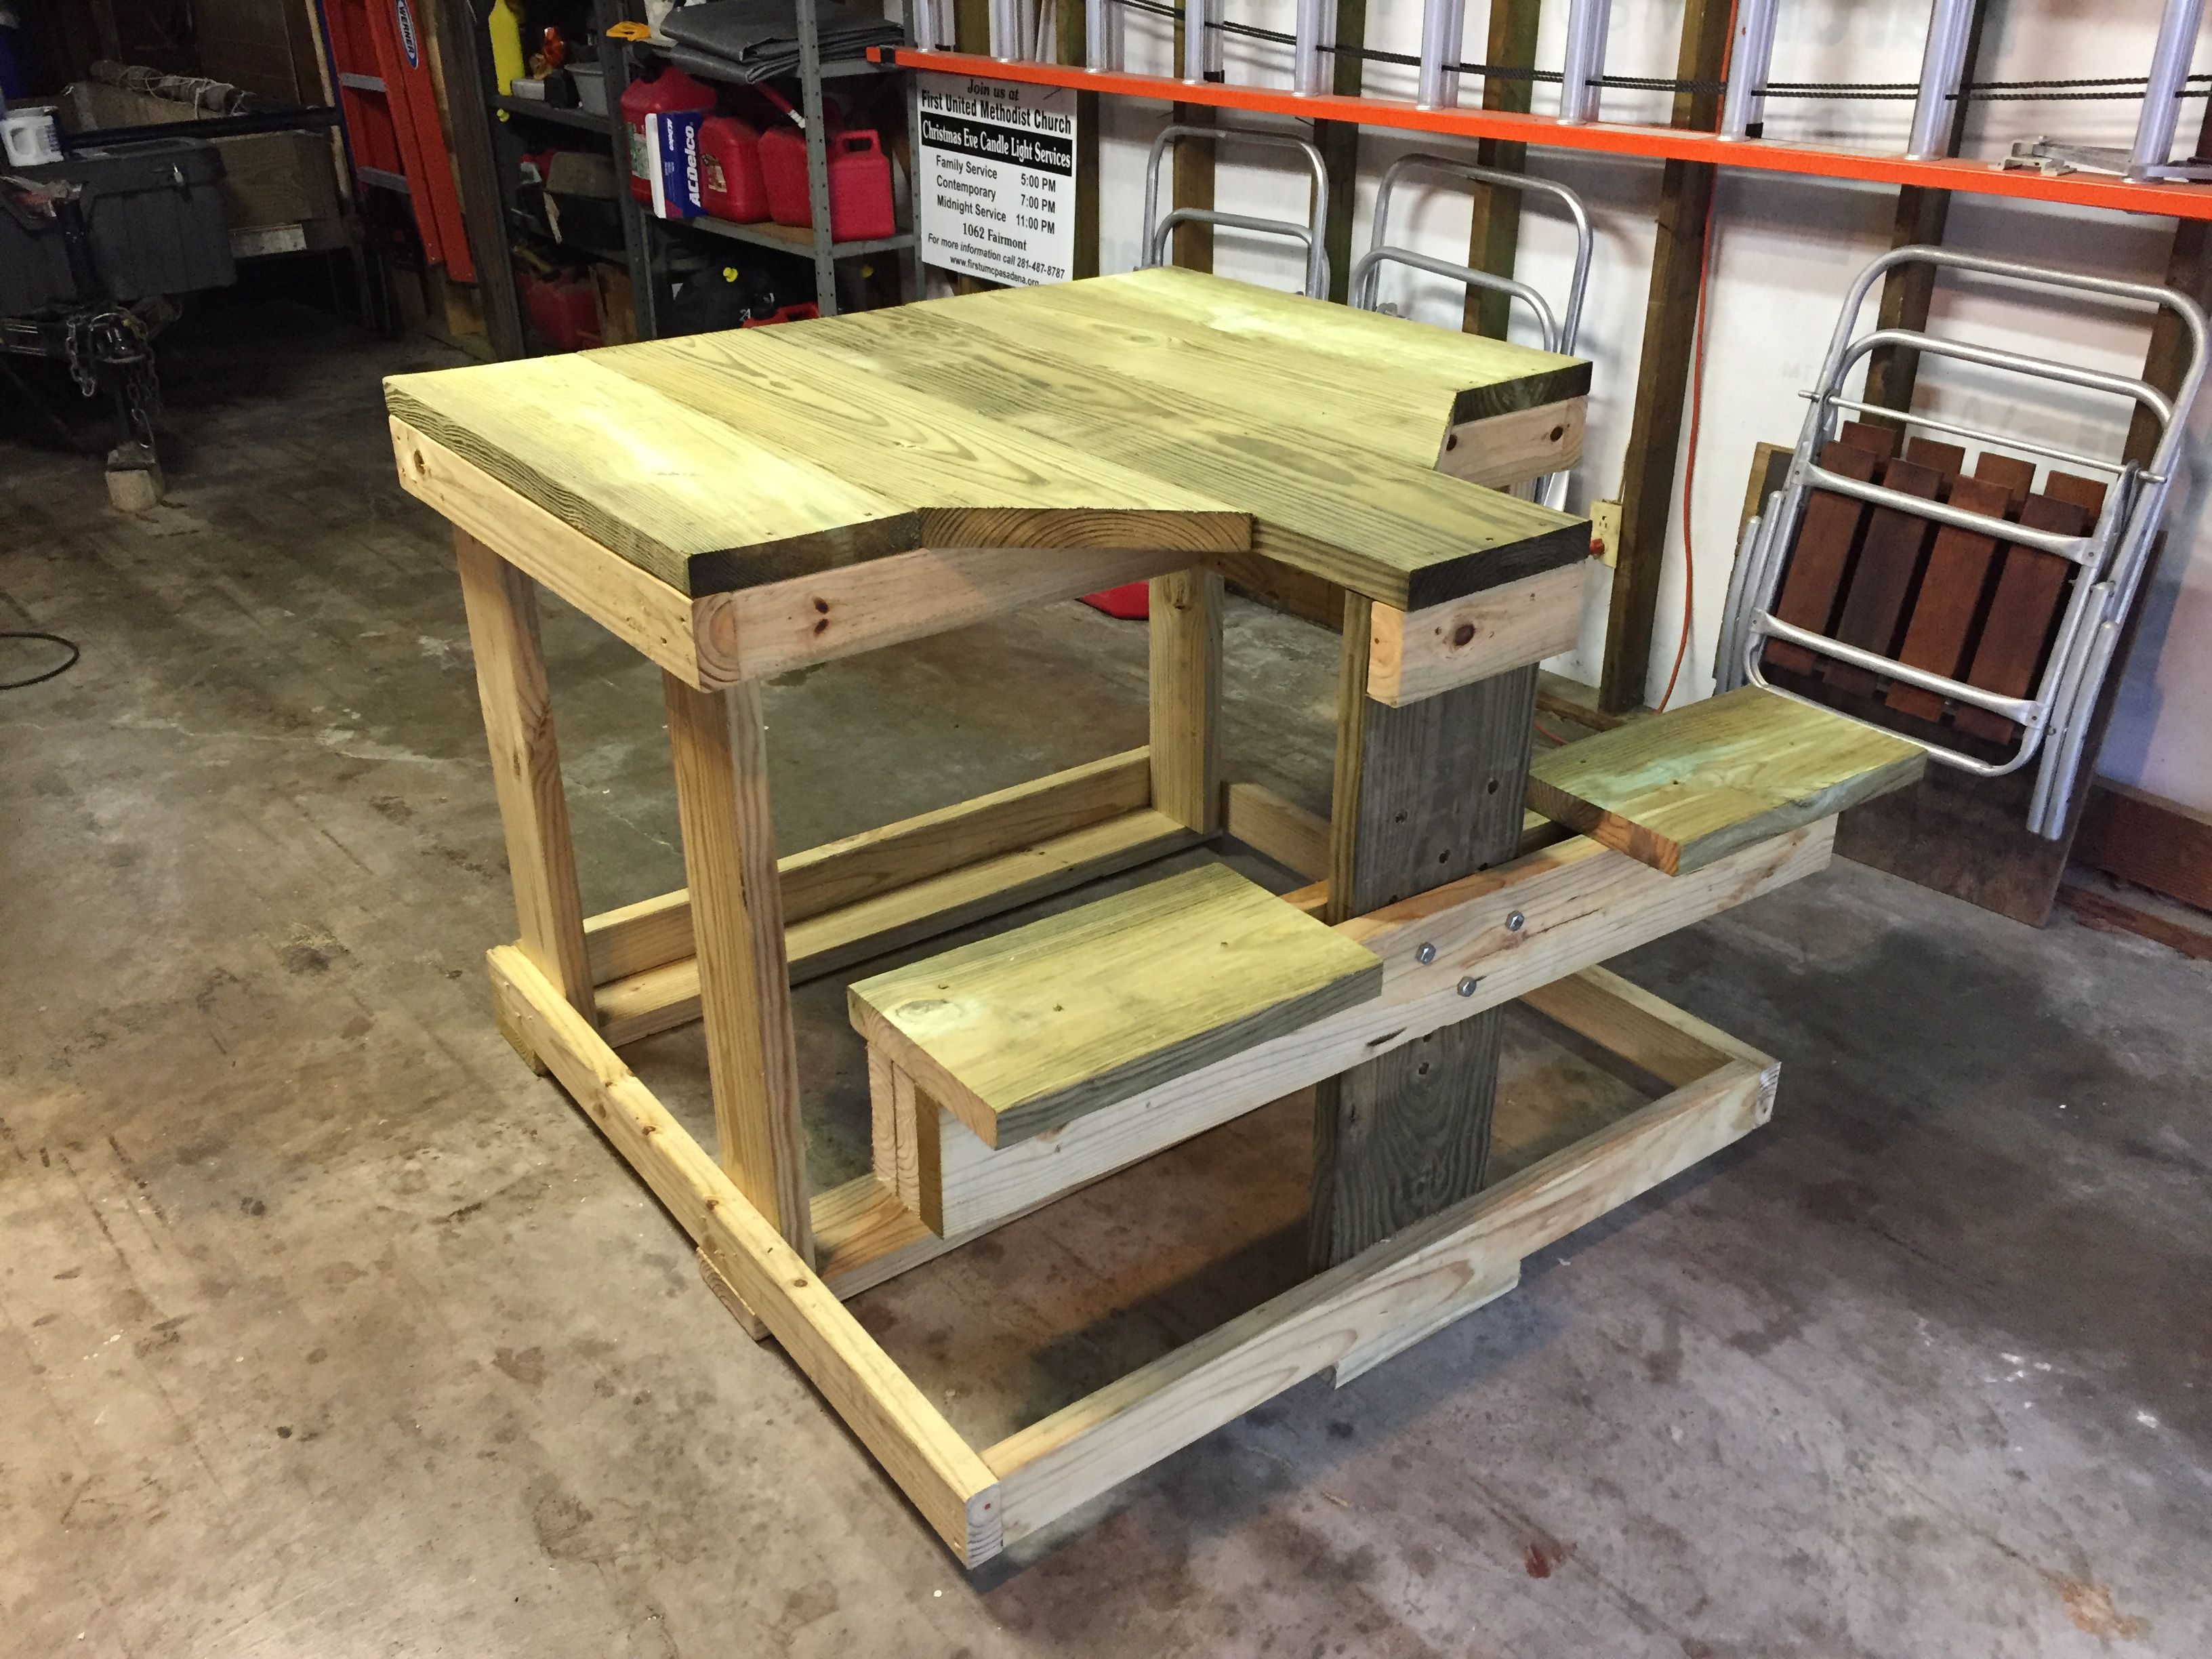 48 X 48 X 36 Tall Treated Lumber Shooting Bench With Adjustable Seat Height Bottom Runners Are Sacrificial To Be Replaced Shooting Bench Seating Home Decor